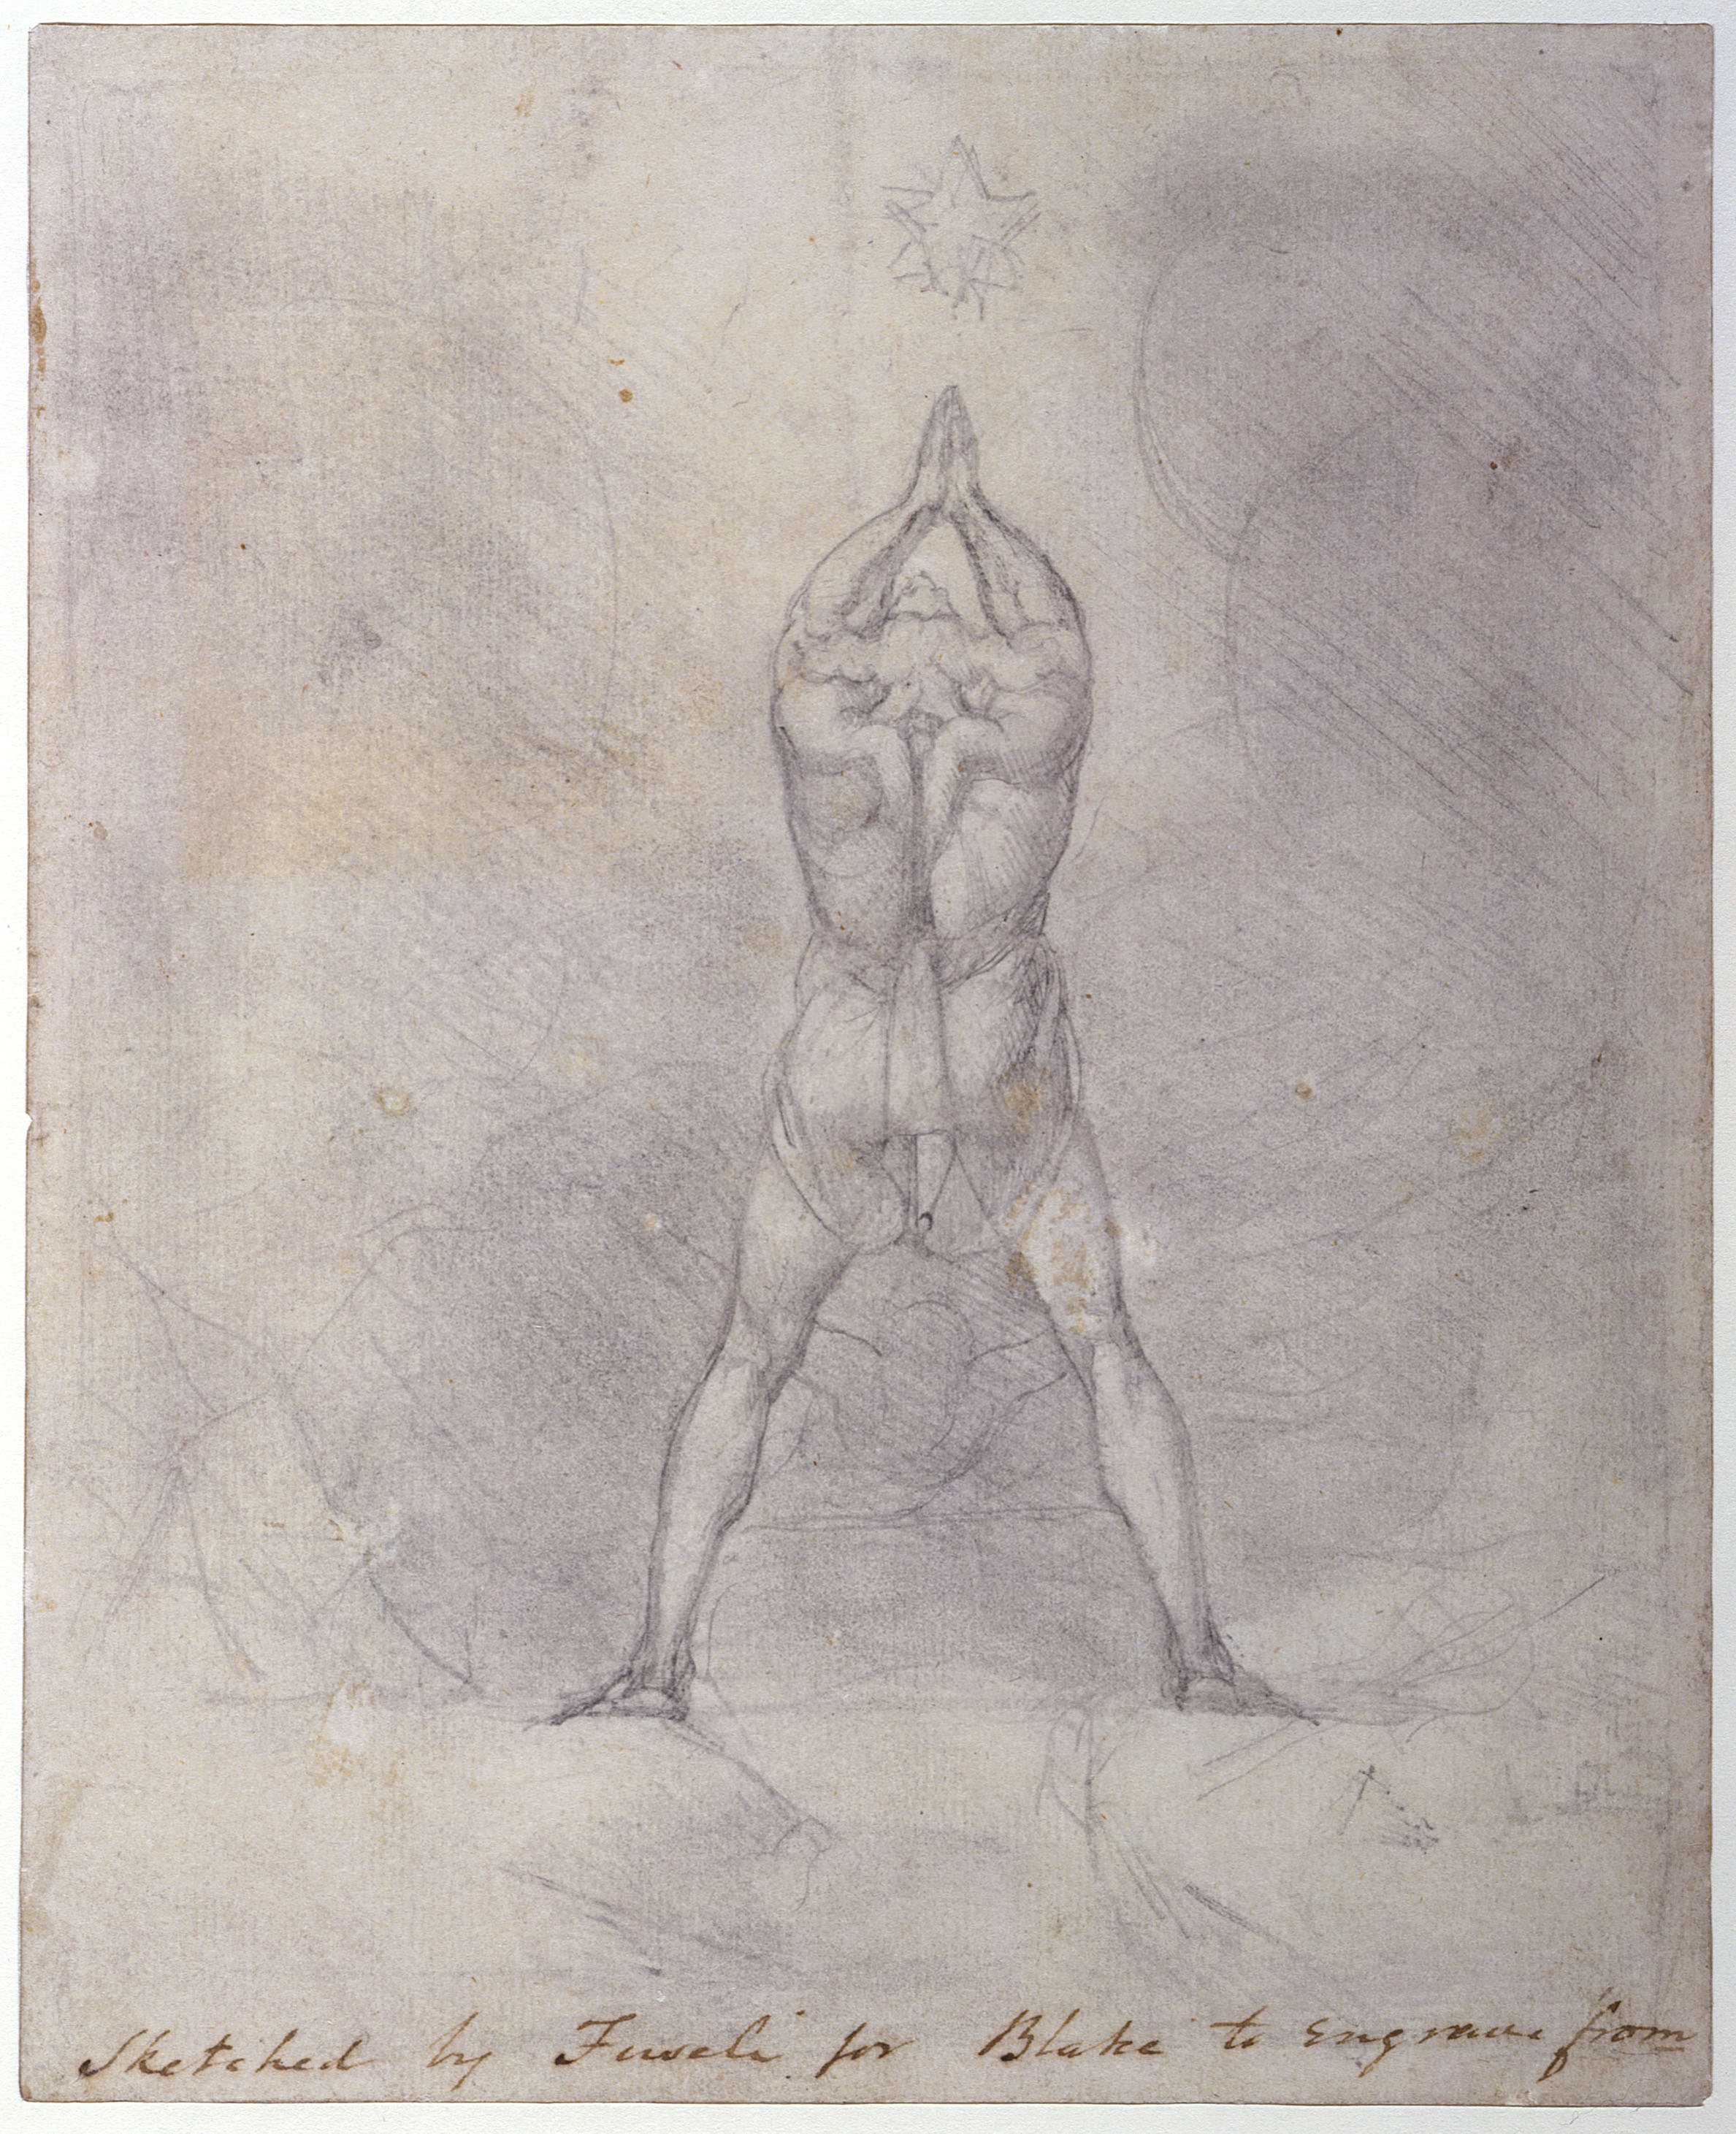 Sketched by Fuseli for Blake to engrave from